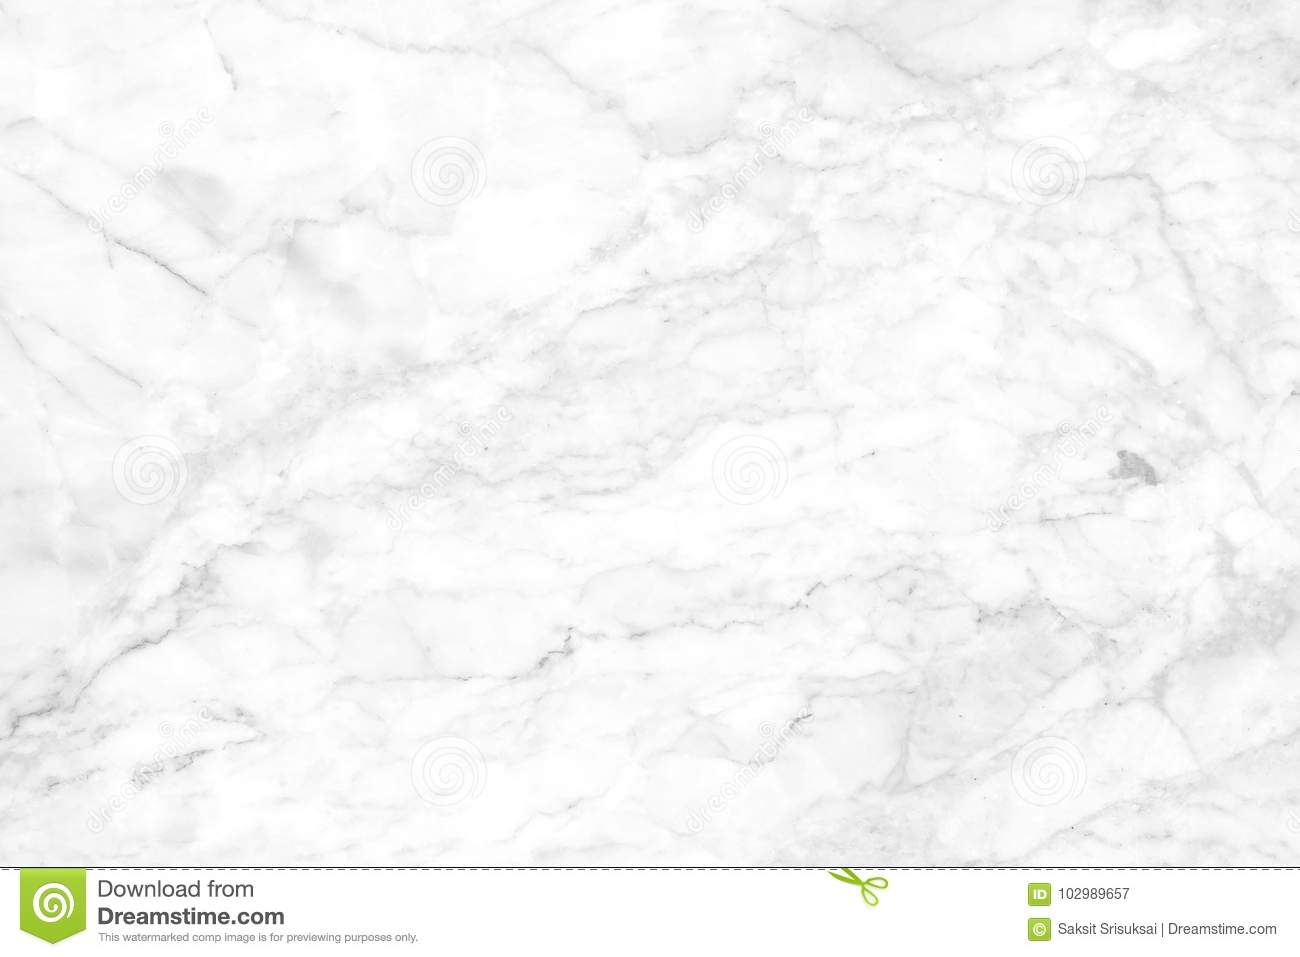 White marble texture background. Interiors marble pattern design.